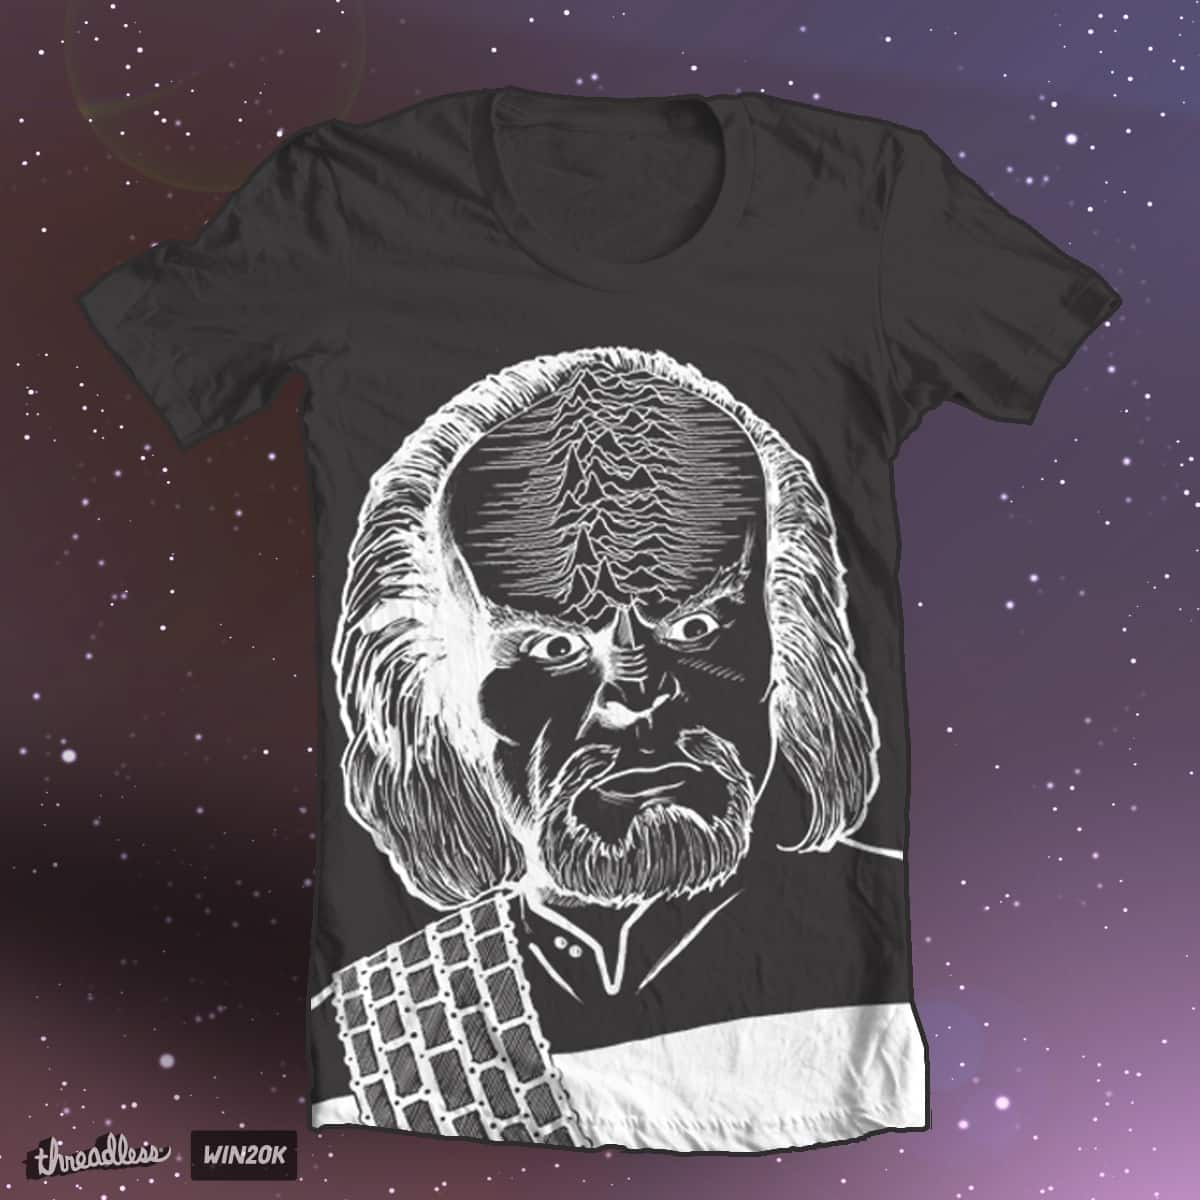 Klingon Pleasures by nickog on Threadless